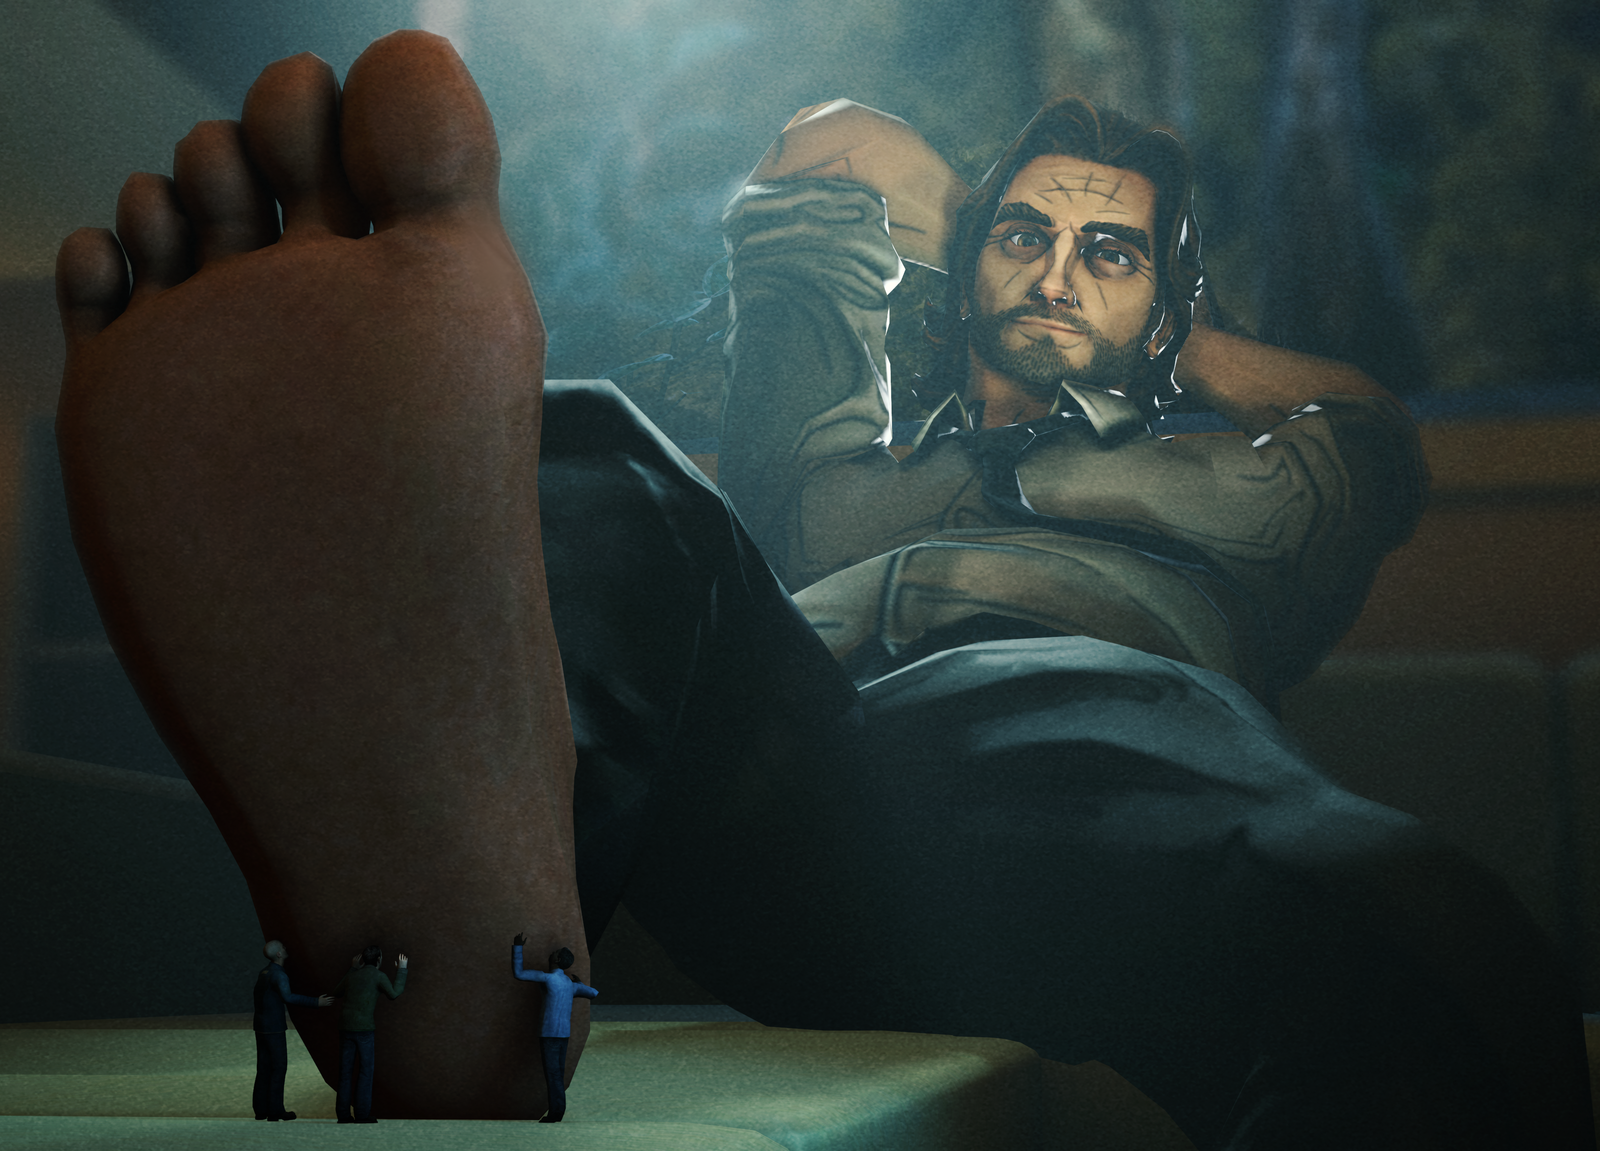 Giant Bigby Foot Worship By Gt And Videogames Dc1ryd5 Png